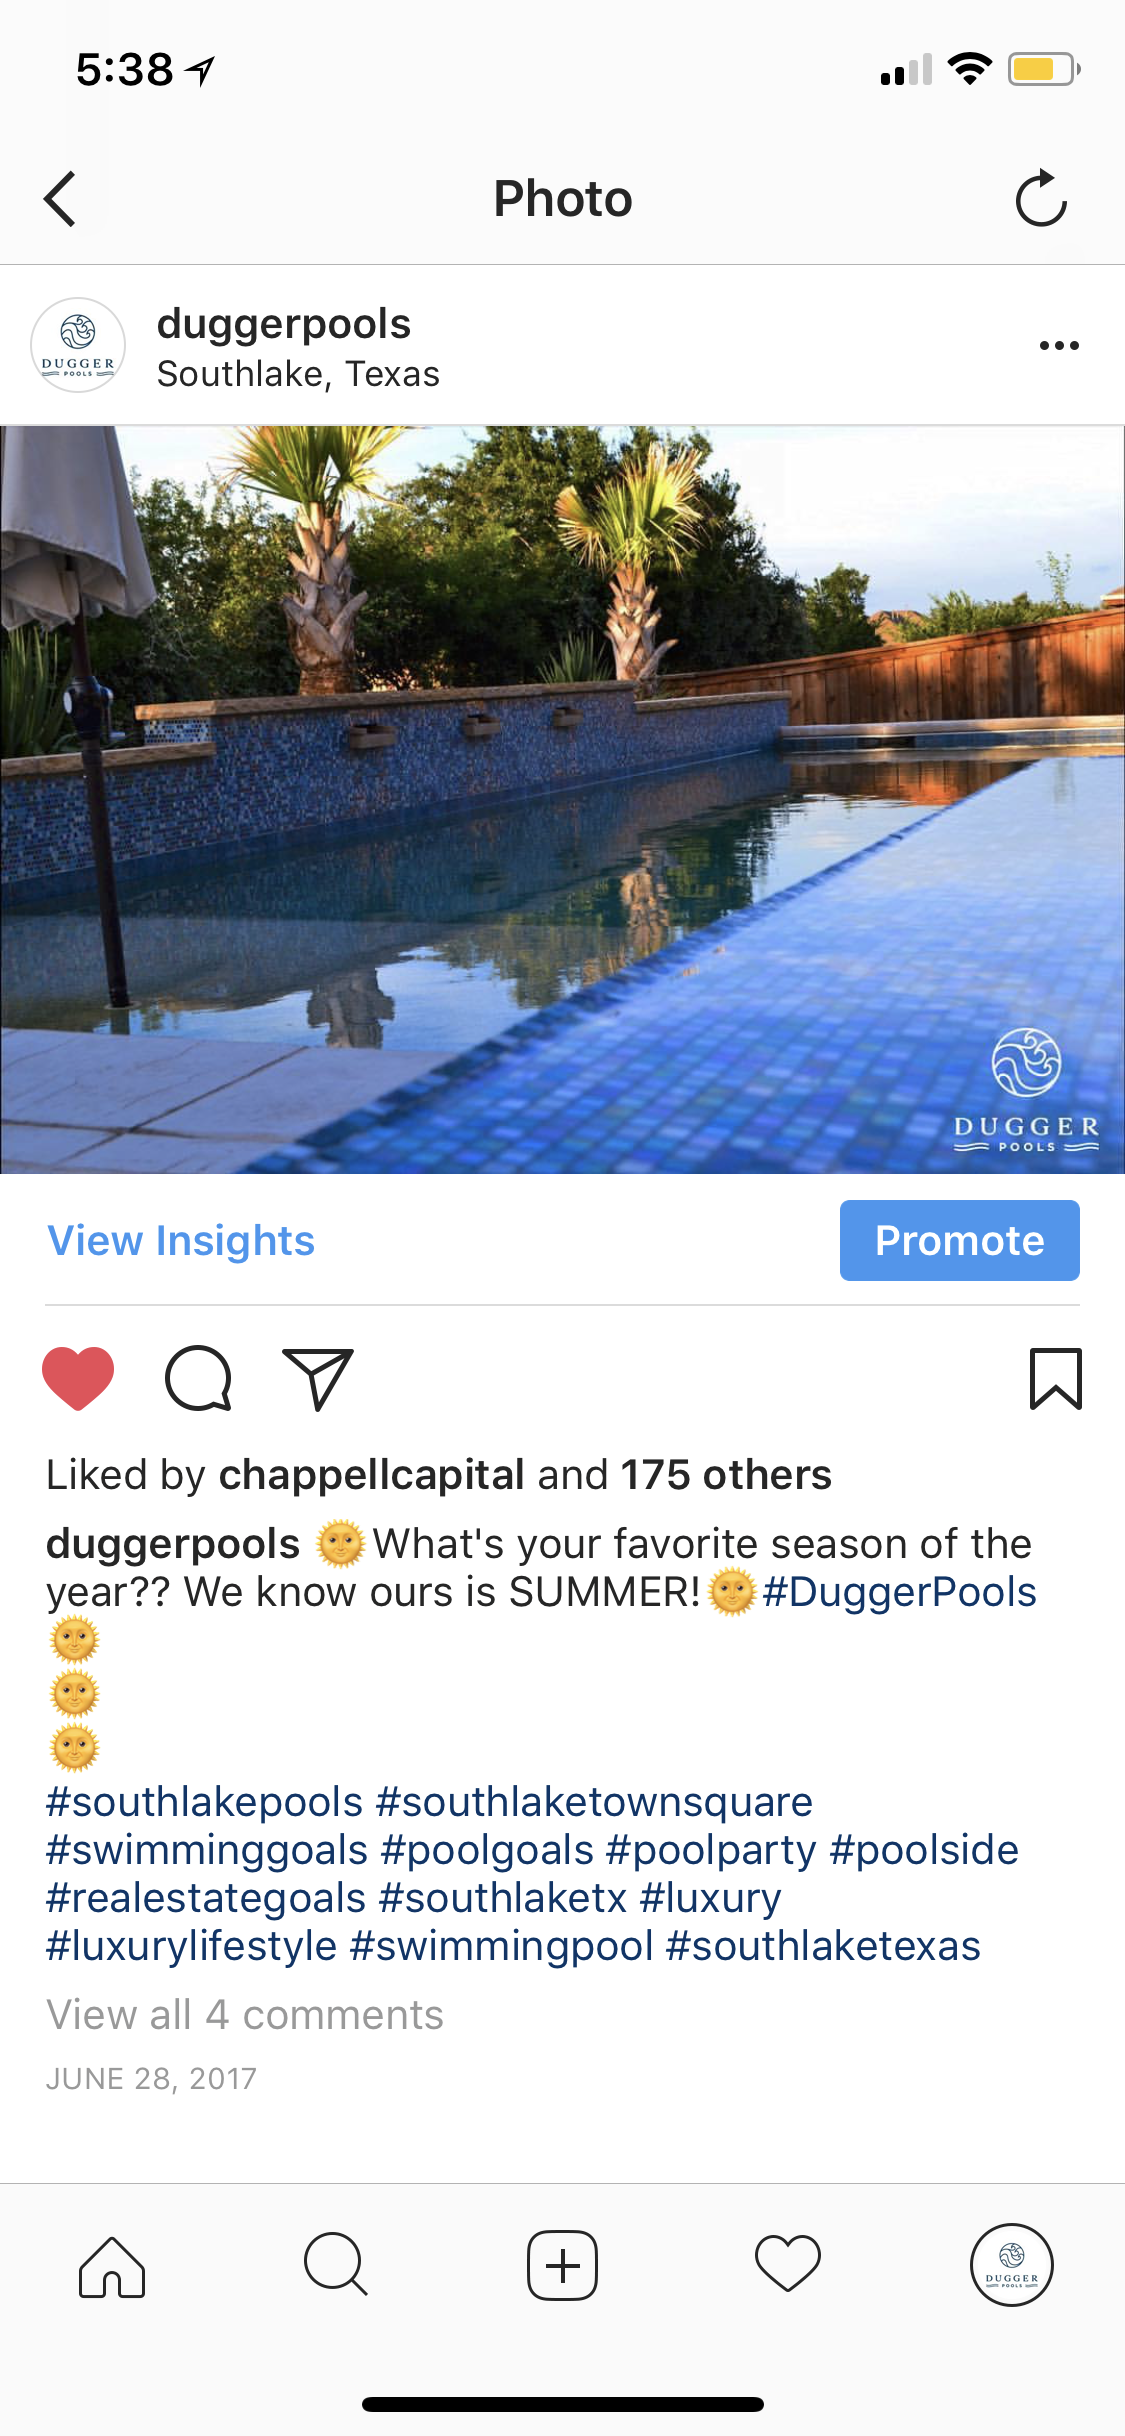 Instagram post example for a pool company that got a lot of engagement